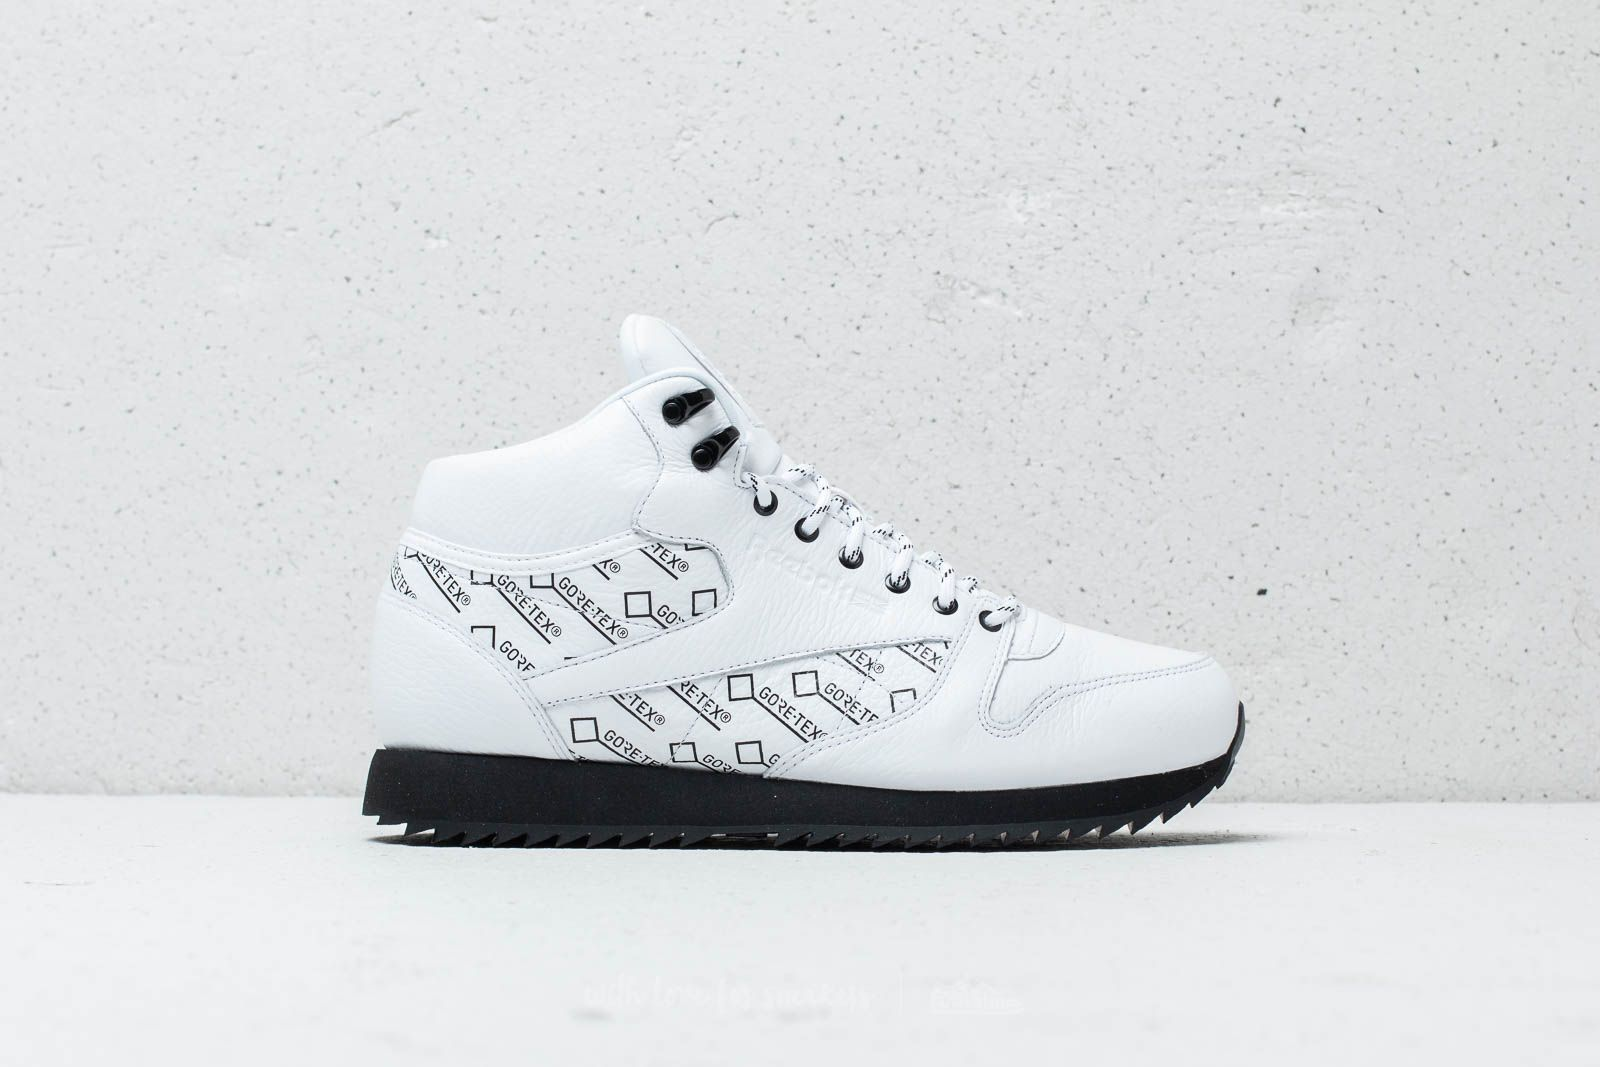 cee658e62592 Reebok CL Leather Mid Ripple Gore-Tex White  Black at a great price 72